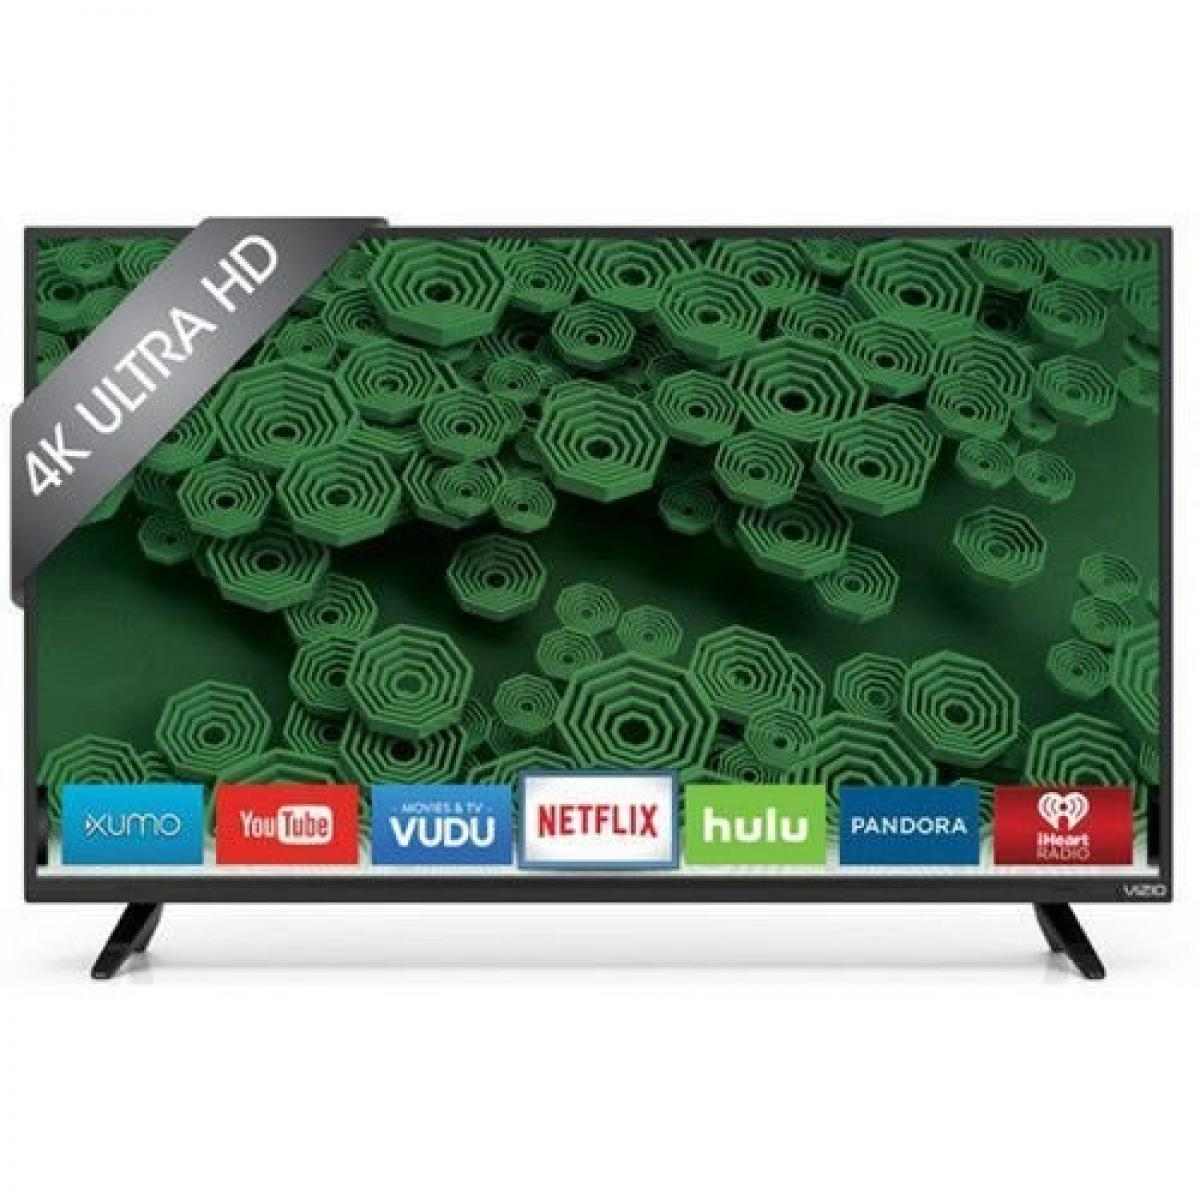 VIZIO 50-Inch 4K Ultra HD TV